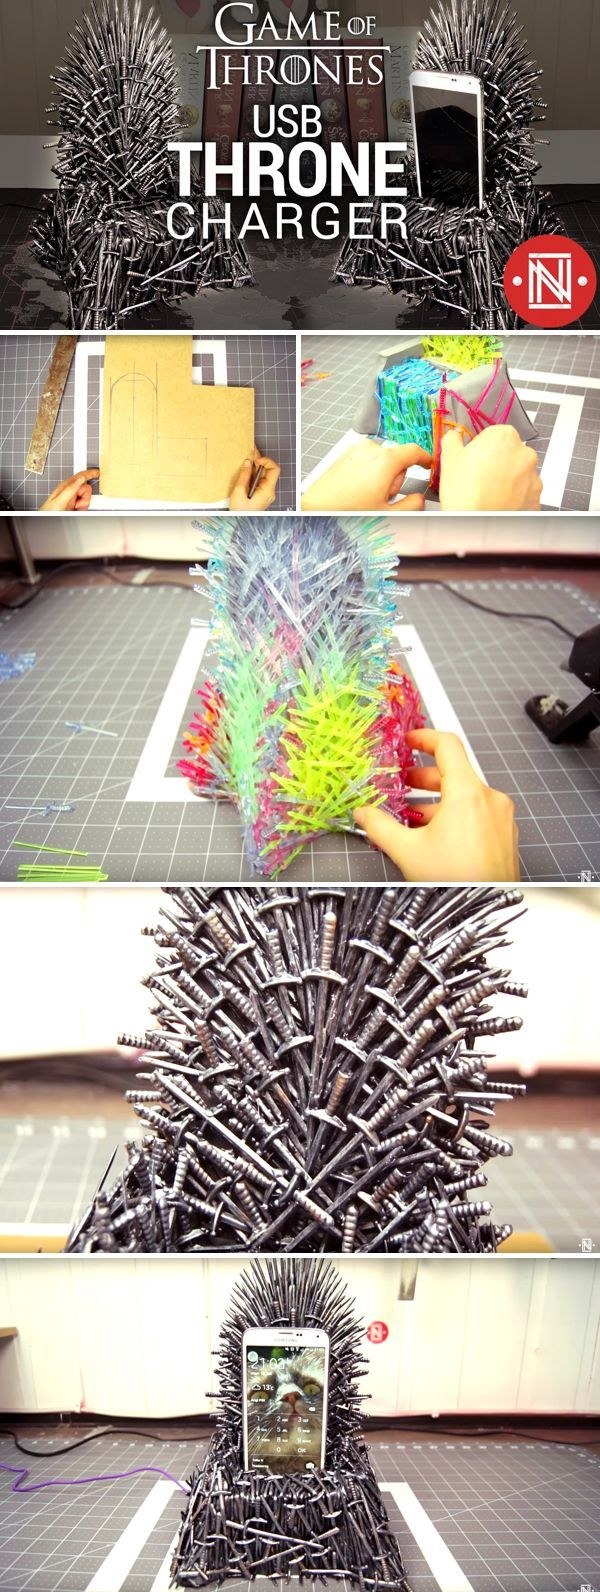 Making A Diy Game Of Thrones Iron Throne Phone Charger With